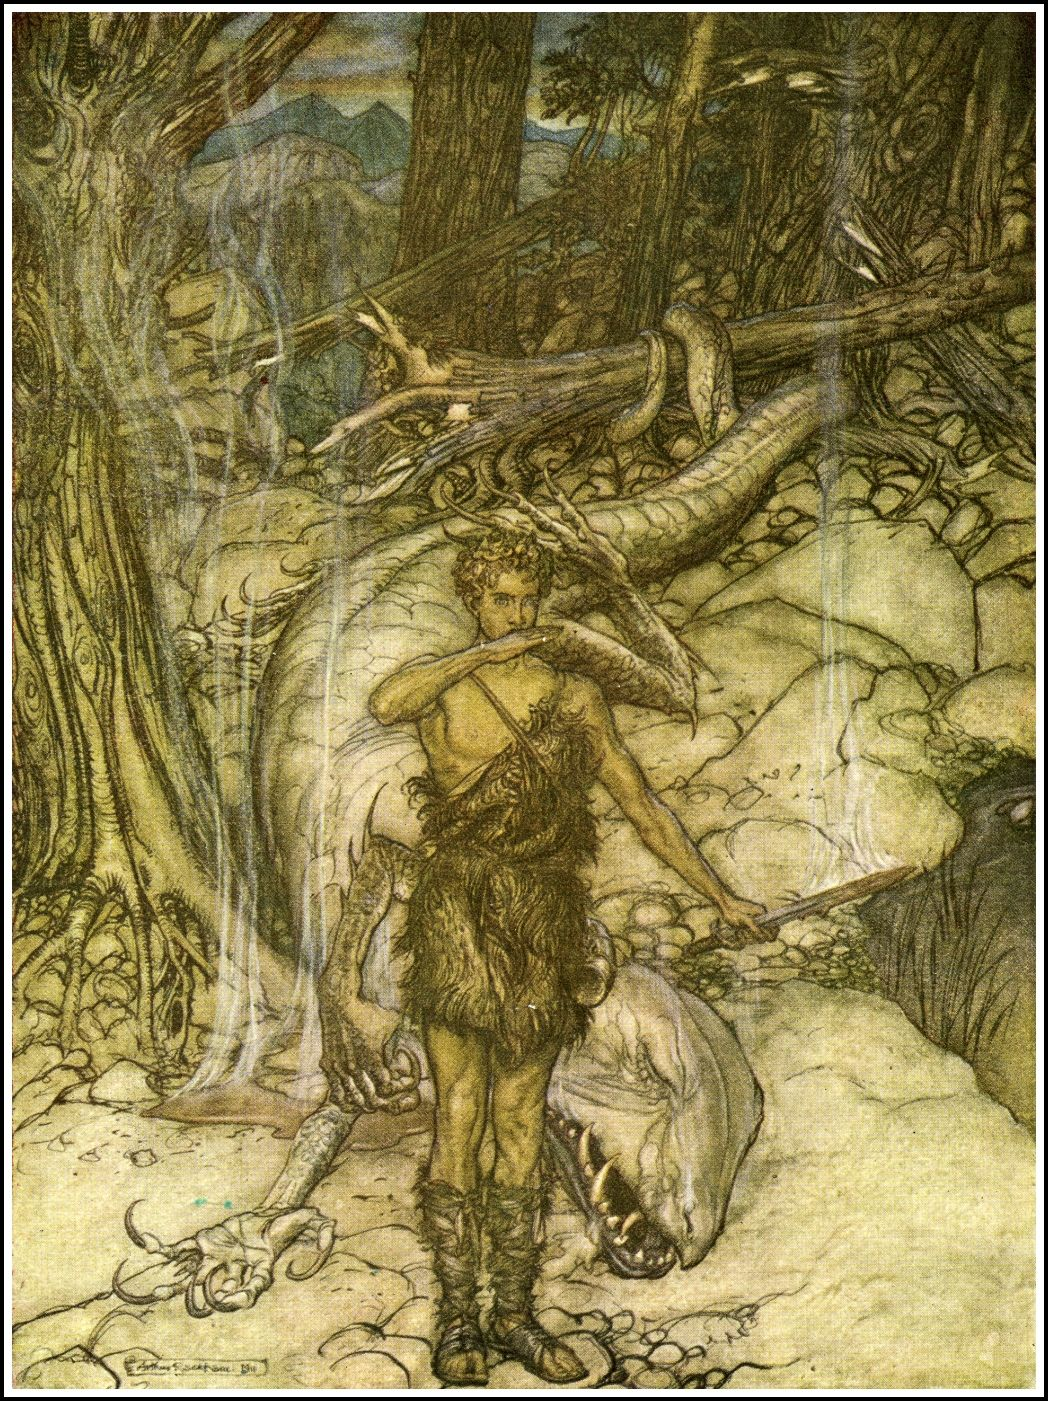 Arthur Rackham - Siegfried - blood burns like fire | The Ring of the